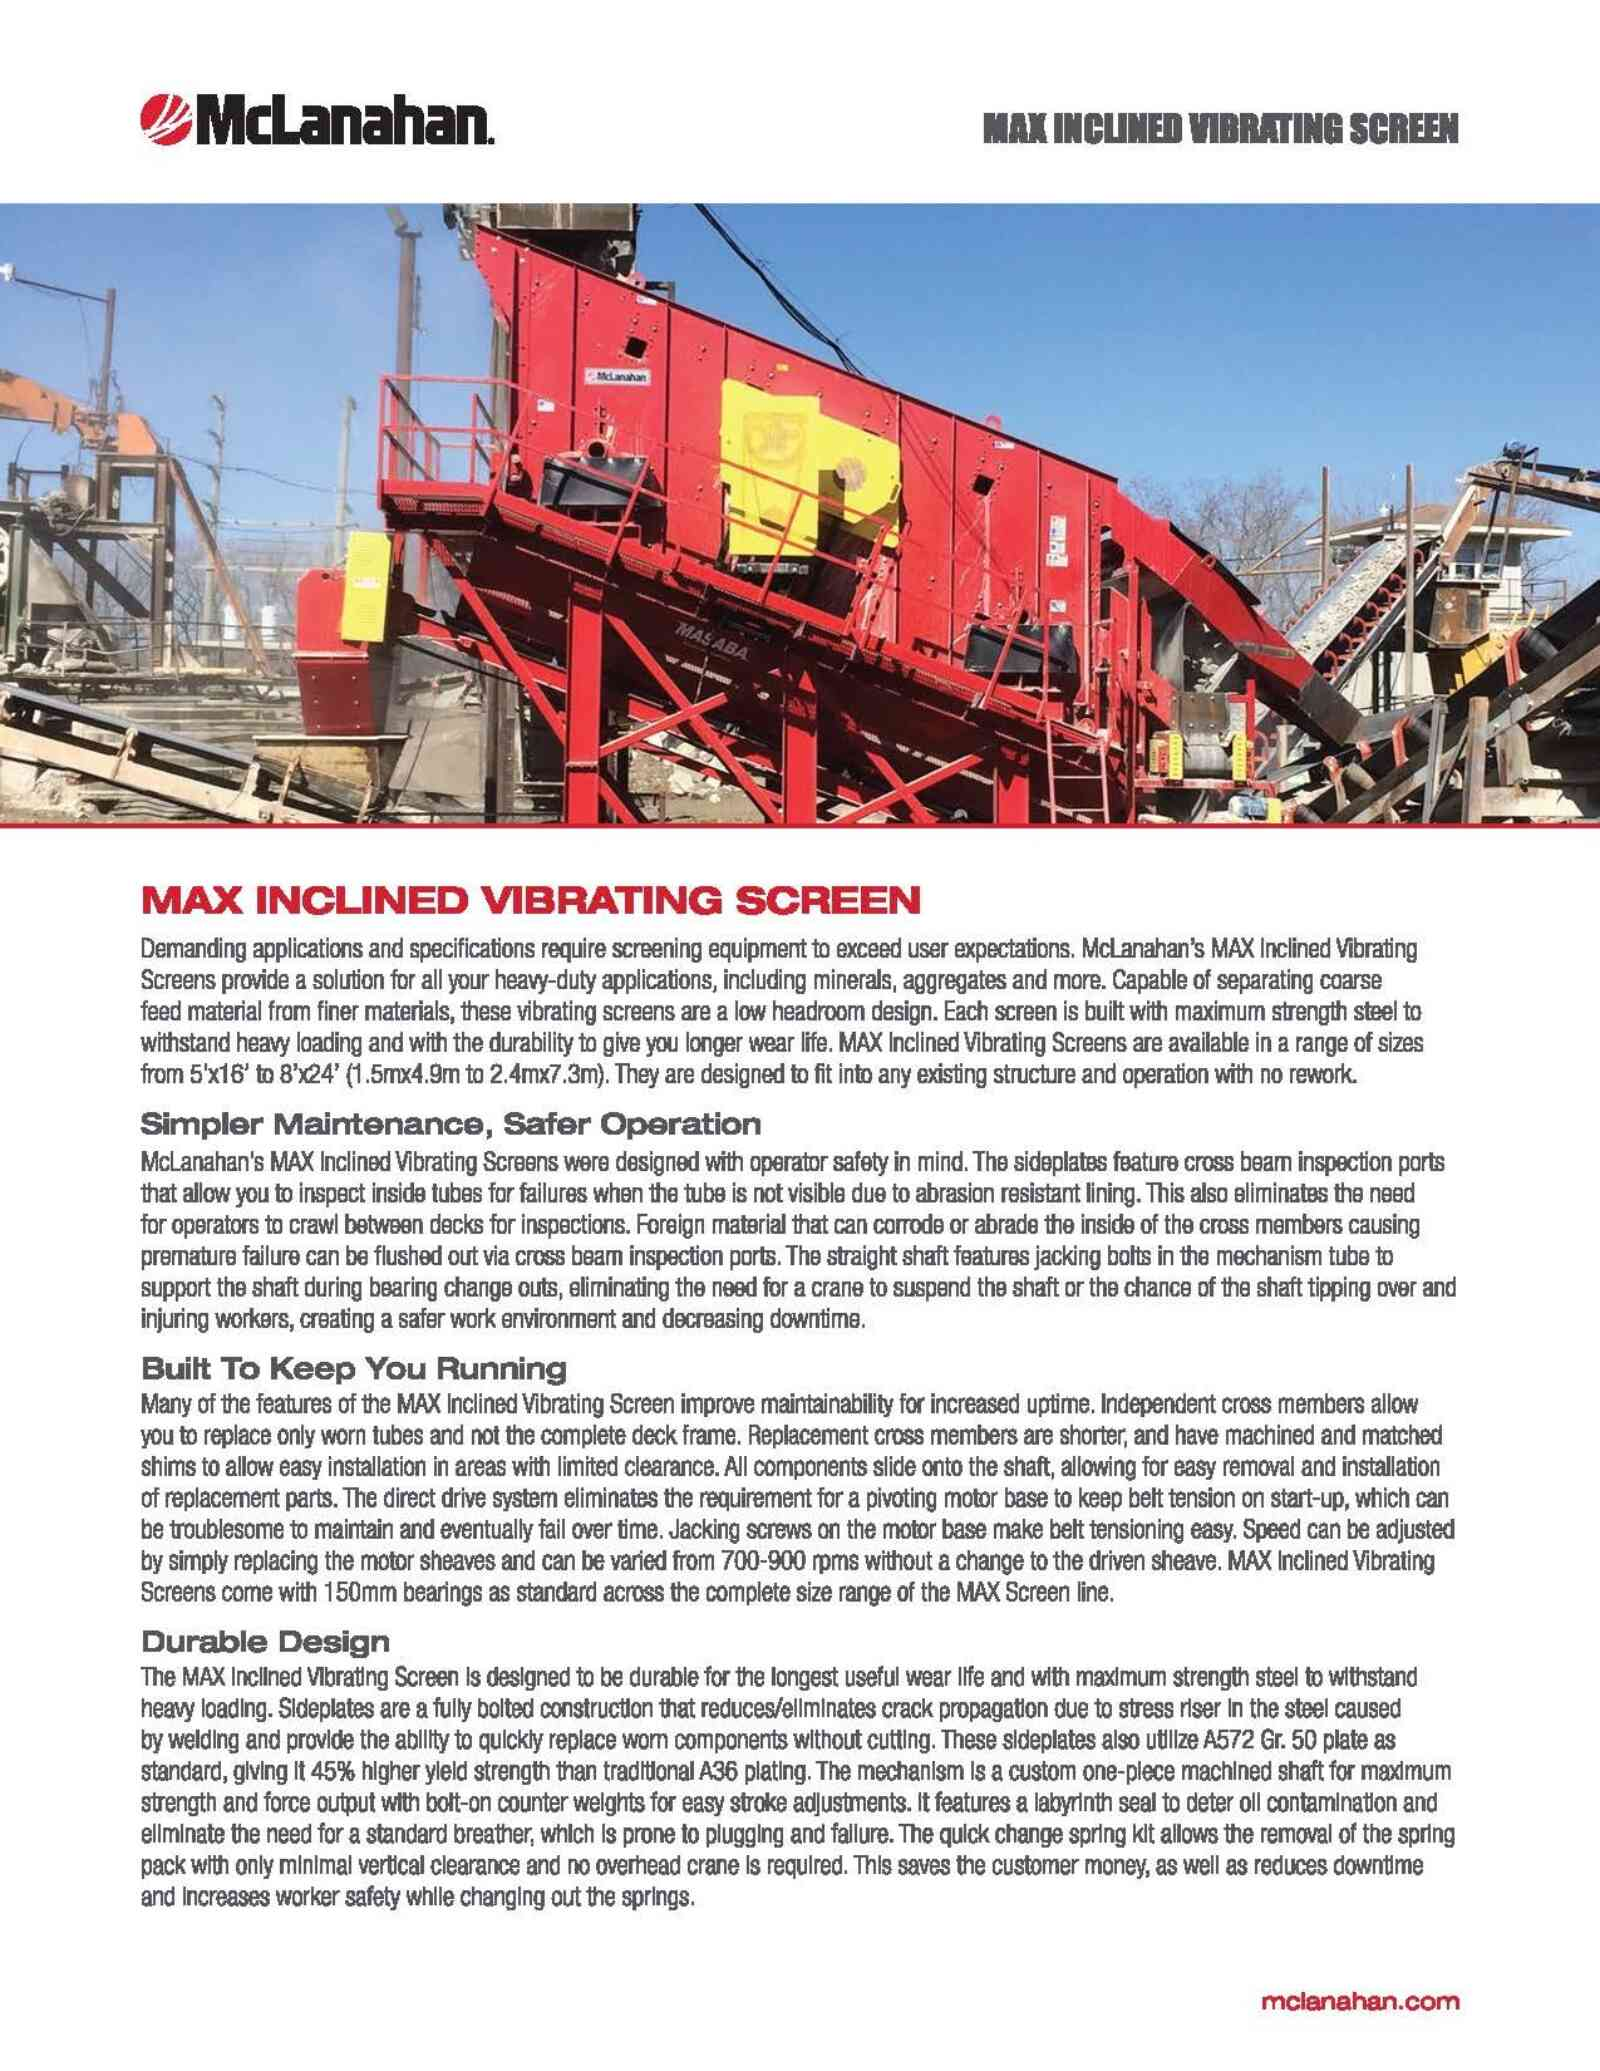 Max Inclined Vibrating Screen Brochure Image Page 1